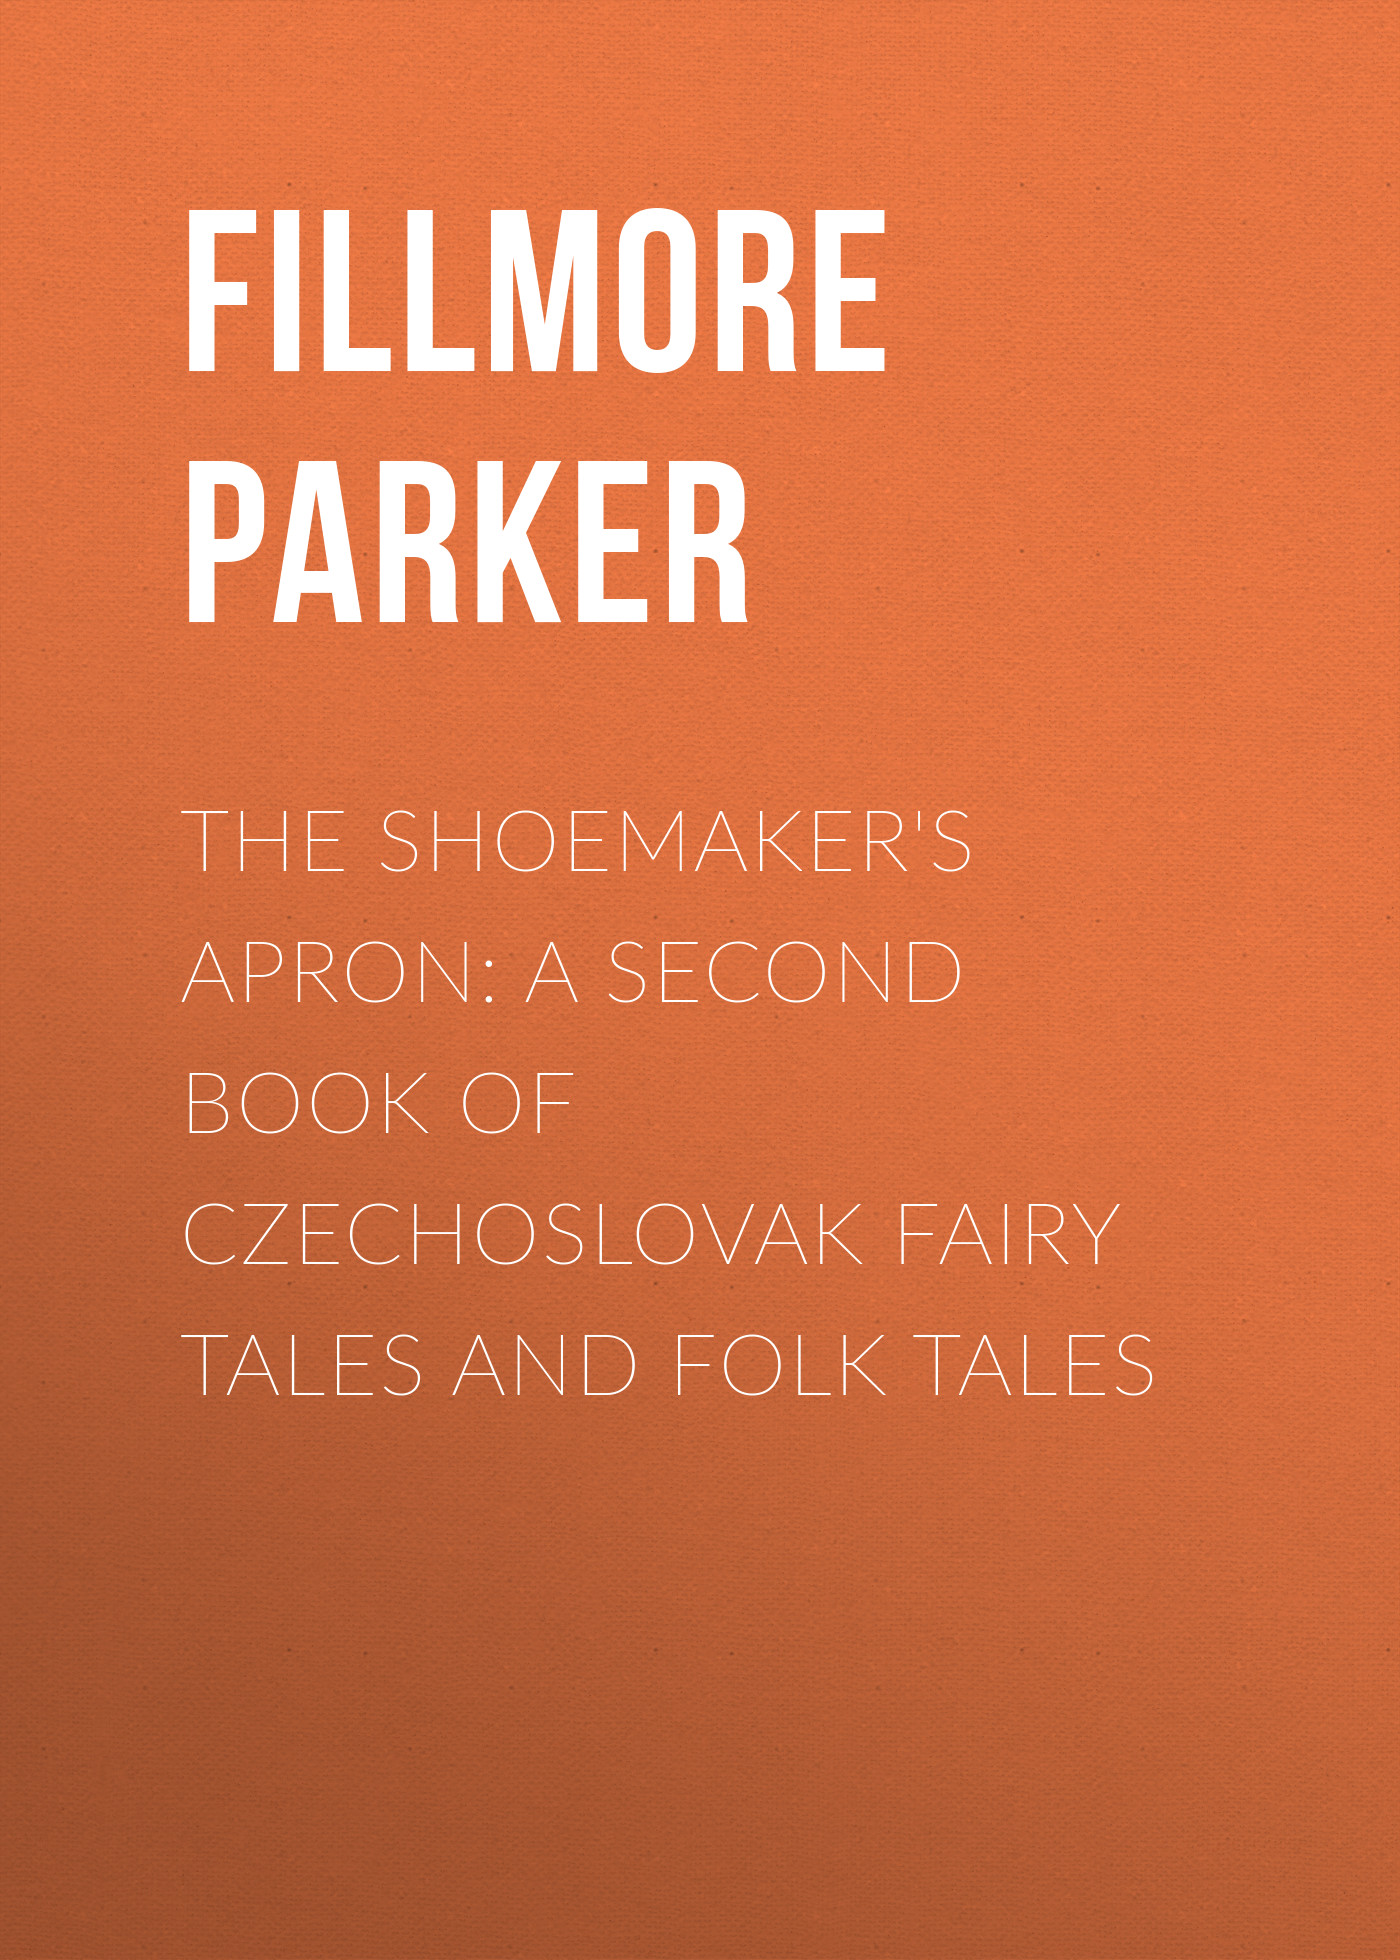 Fillmore Parker The Shoemaker's Apron: A Second Book of Czechoslovak Fairy Tales and Folk Tales ручки parker s1859483